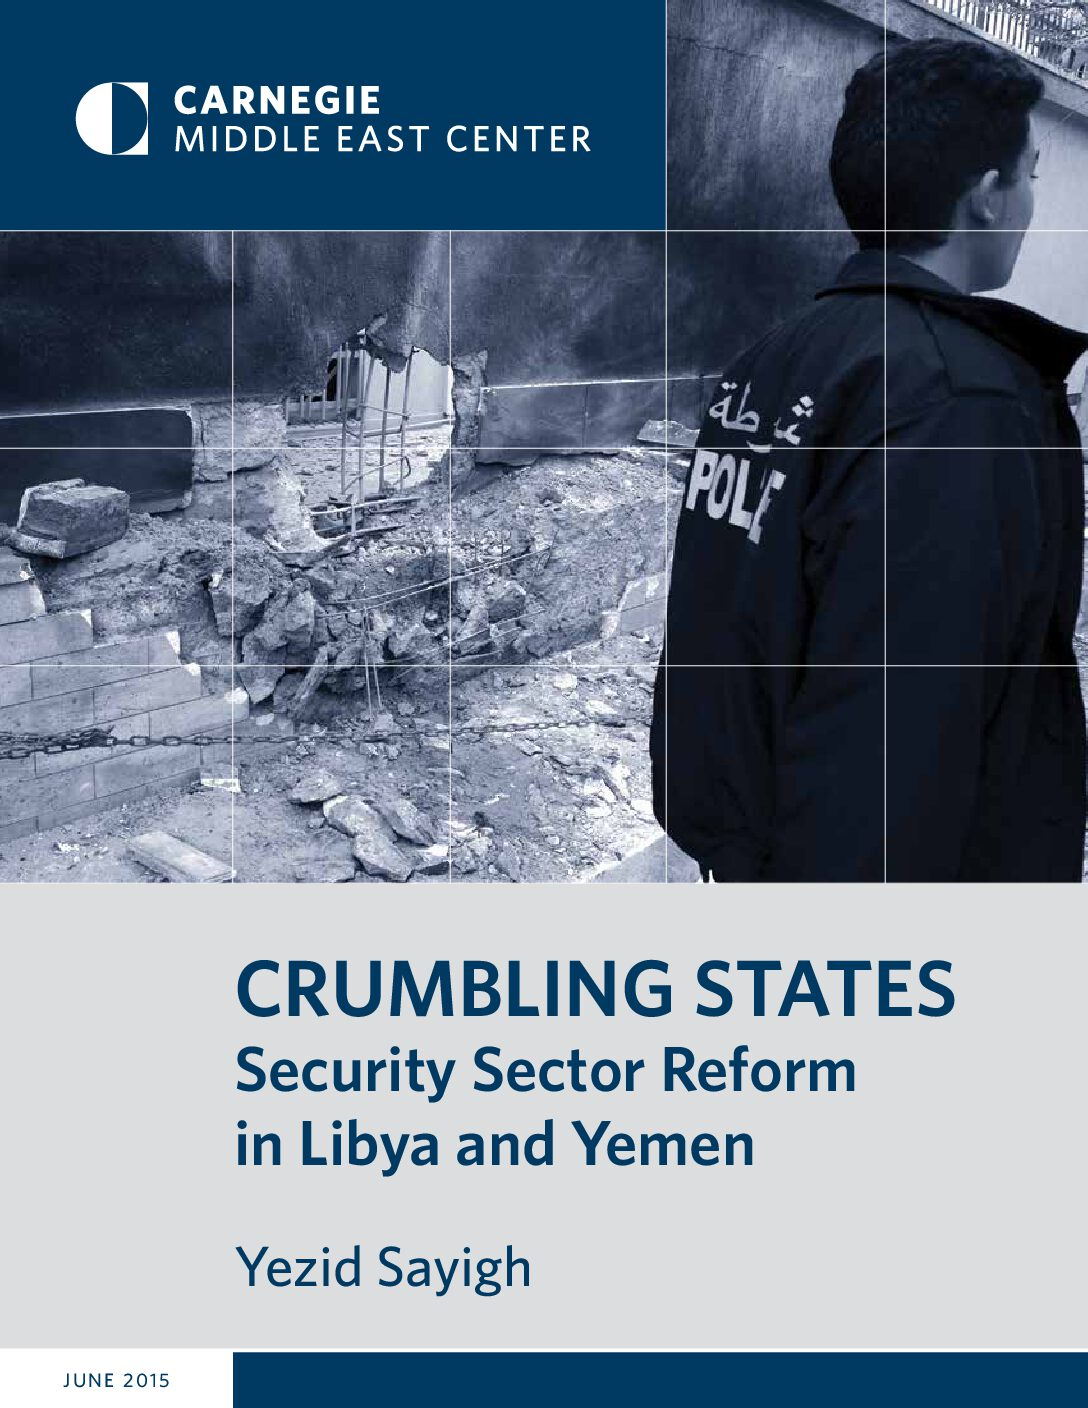 Crumbling States: Security Sector Reform in Libya and Yemen